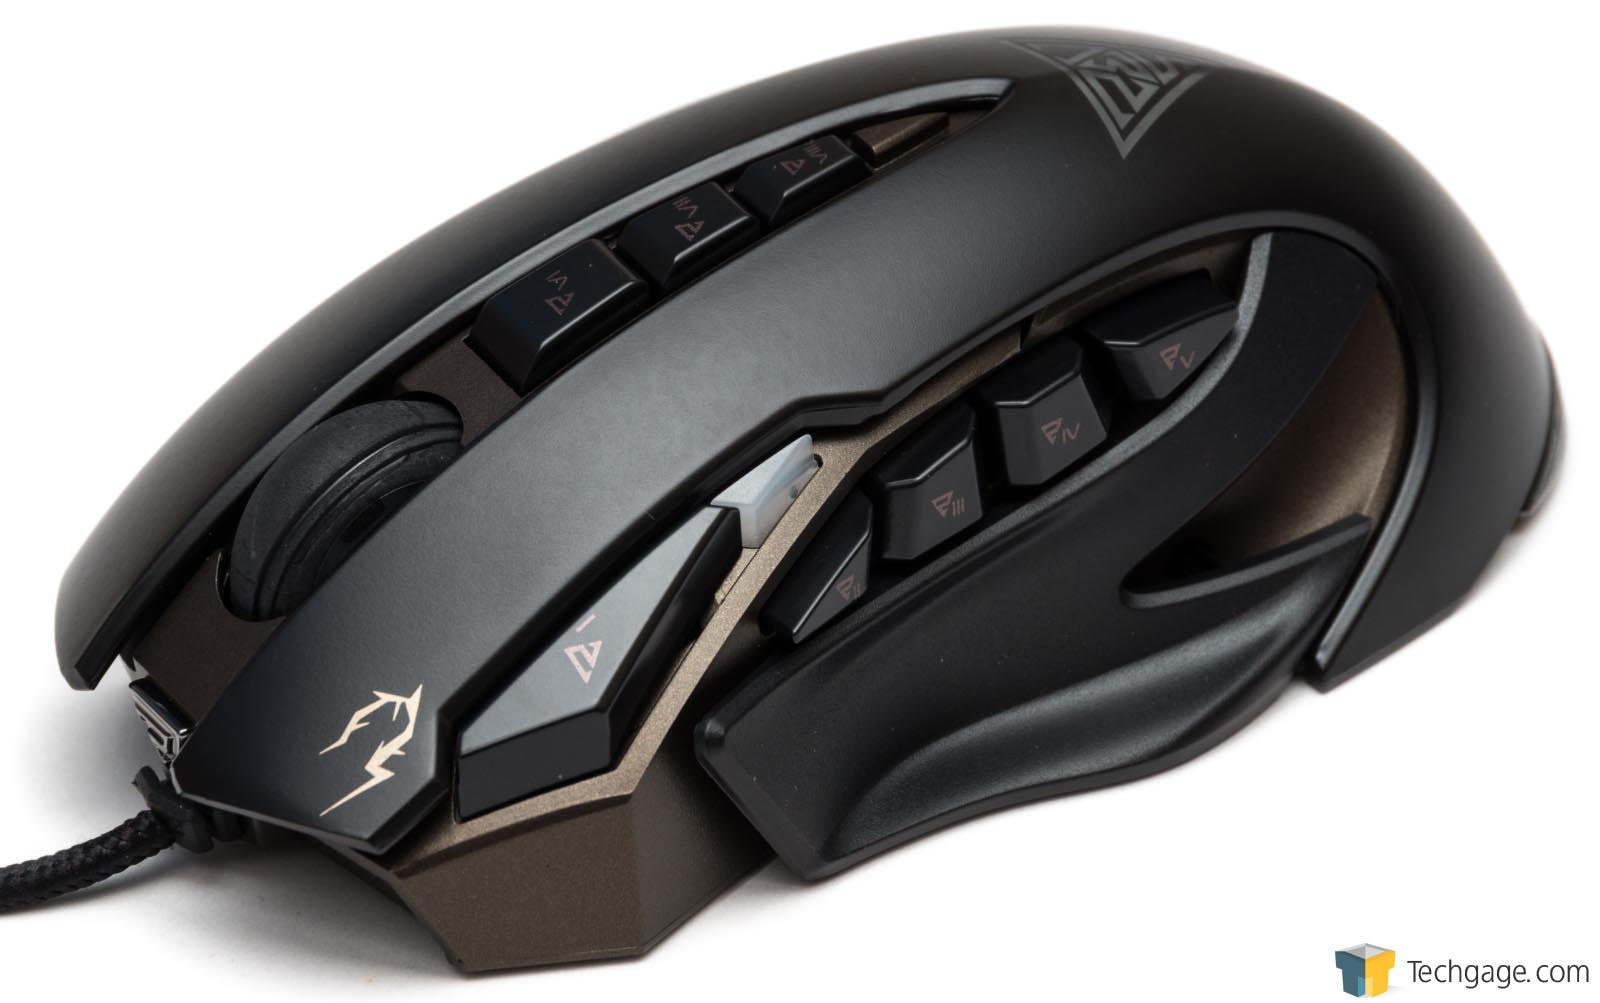 GAMDIAS ZEUS Laser Gaming Mouse Review – Techgage